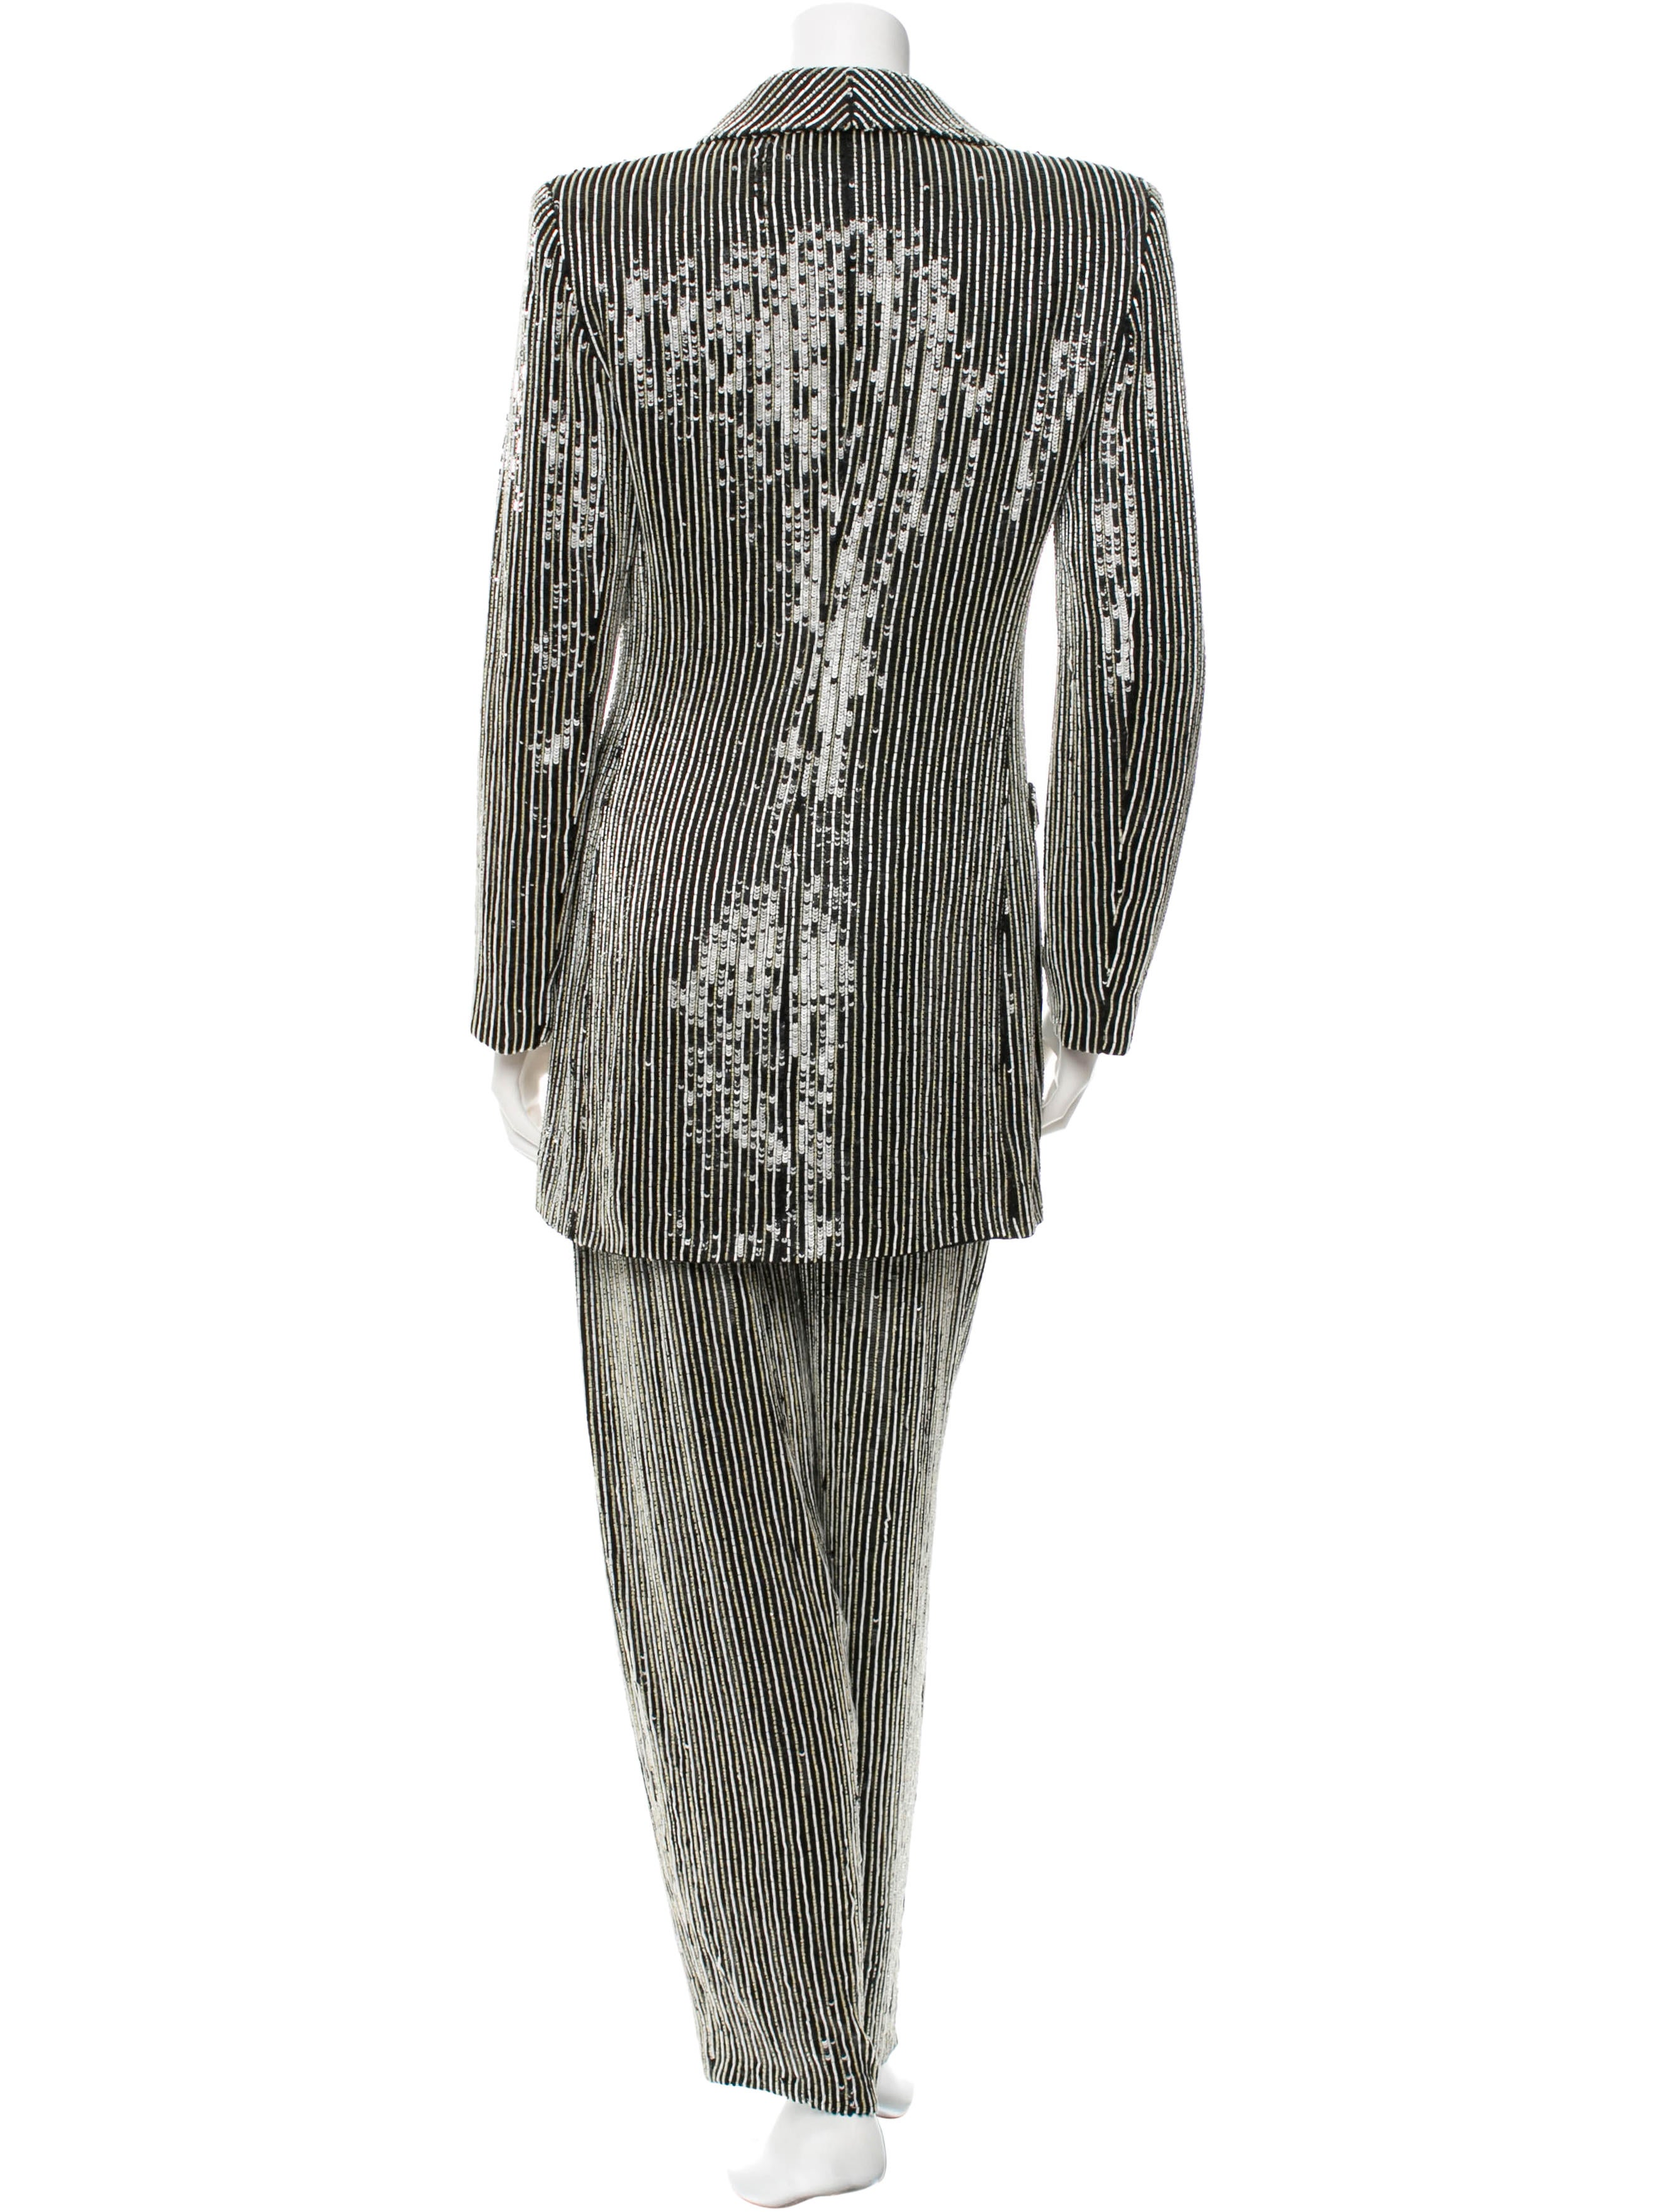 Giorgio Armani Sequined Amp Beaded Accent Pant Suit